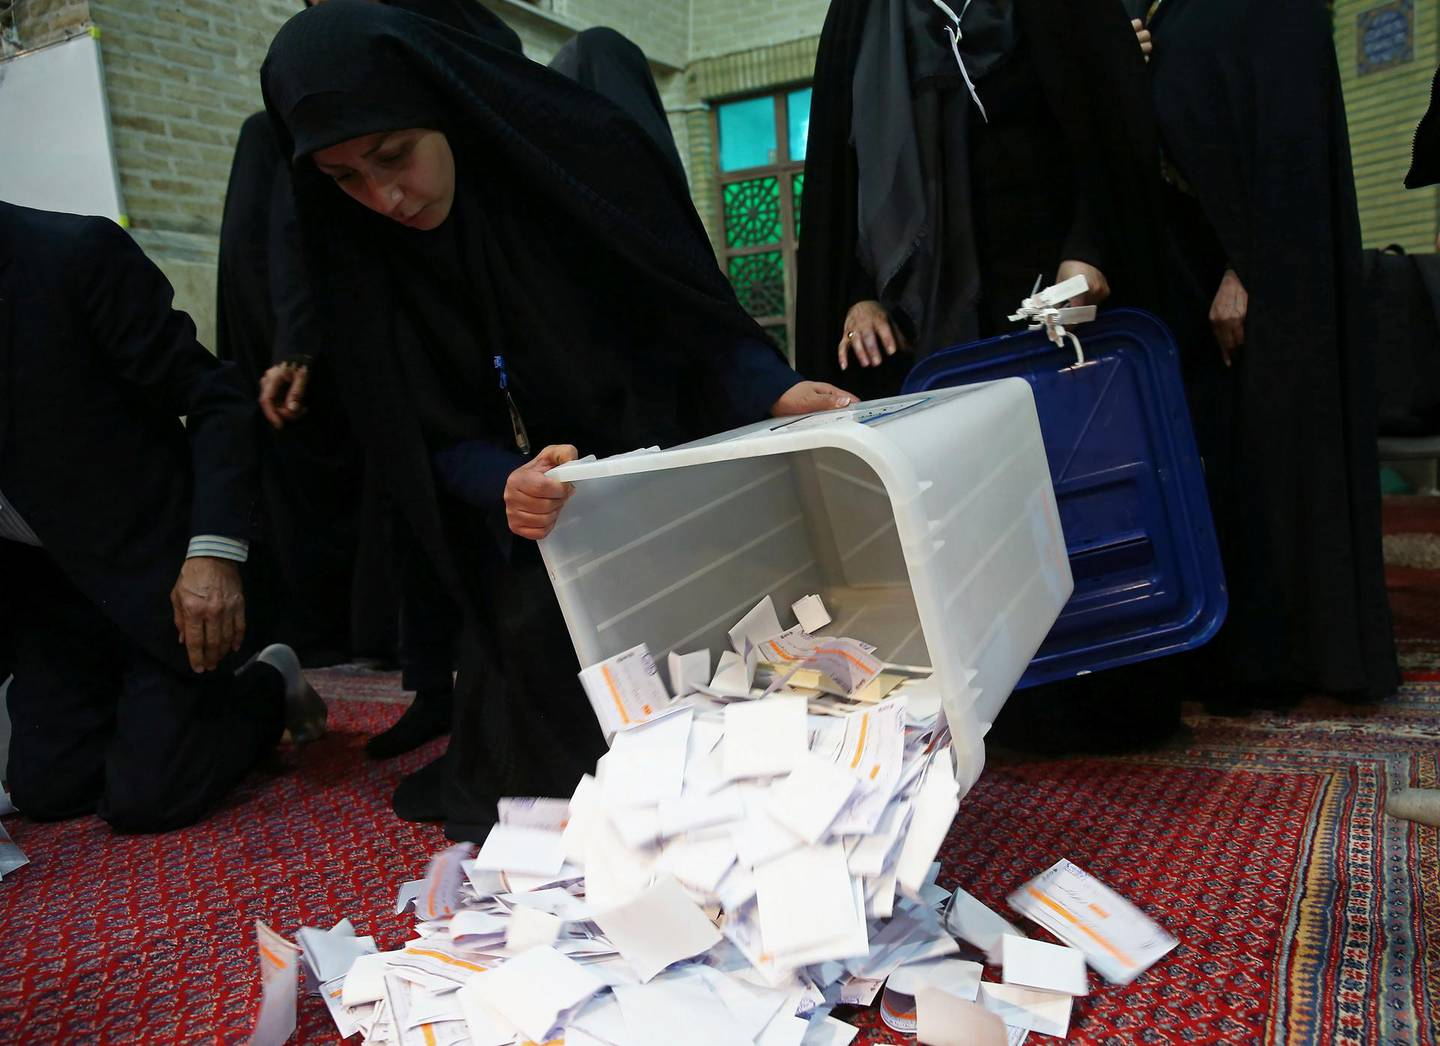 Poll workers empty full ballot boxes after the parliamentary election voting time ended in Tehran, Iran February 22, 2020. Nazanin Tabatabaee/ WANA (West Asia News Agency)/Nazanin Tabatabaee via REUTERS ATTENTION EDITORS - THIS IMAGE HAS BEEN SUPPLIED BY A THIRD PARTY.